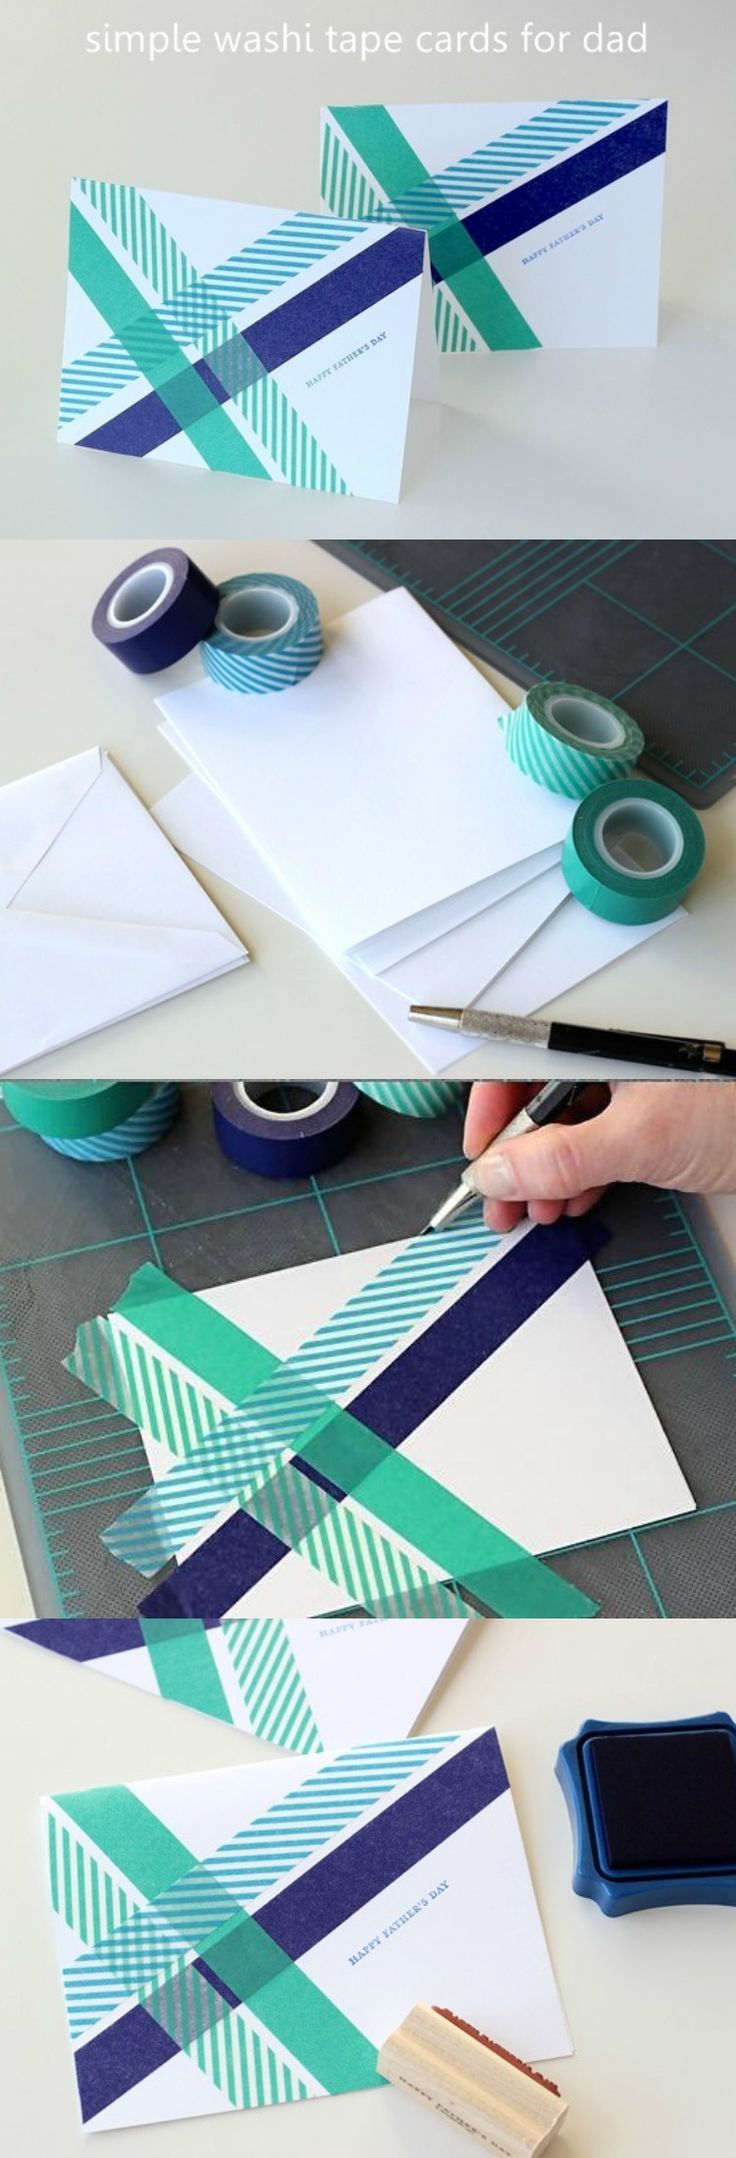 photo tutorial for handmade card with a washi tape weave .. luv the clean graphic look ... translucent tapes create blended colors on the crossings ... great tut!